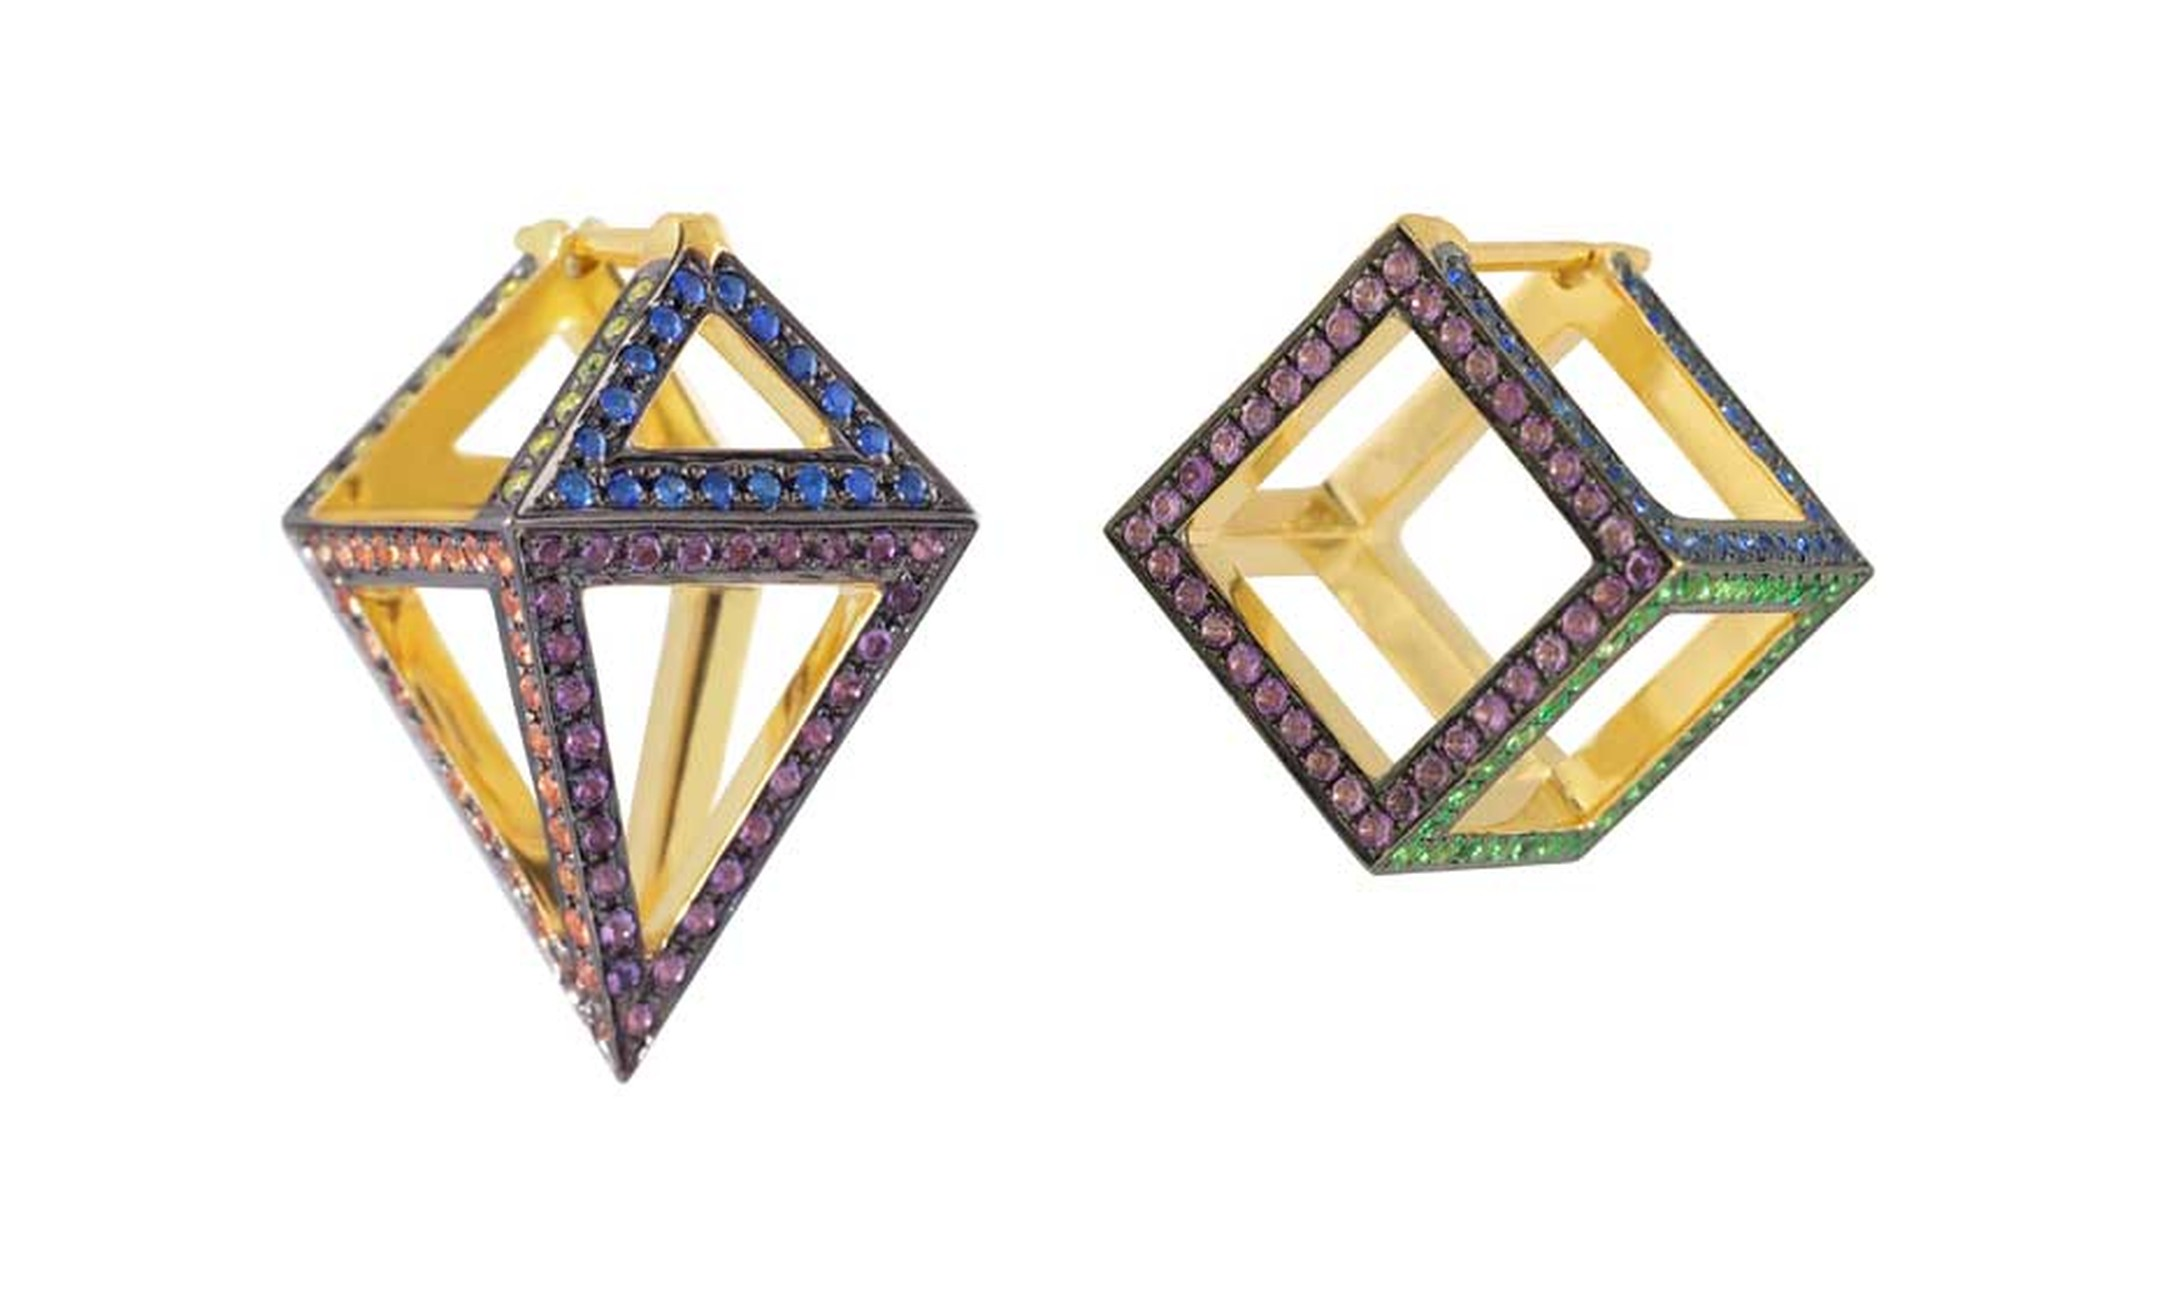 Noor Fares 3D Octahedron and Cube earrings in yellow gold with coloured sapphires from the Geometry 101 Rainbow collection.